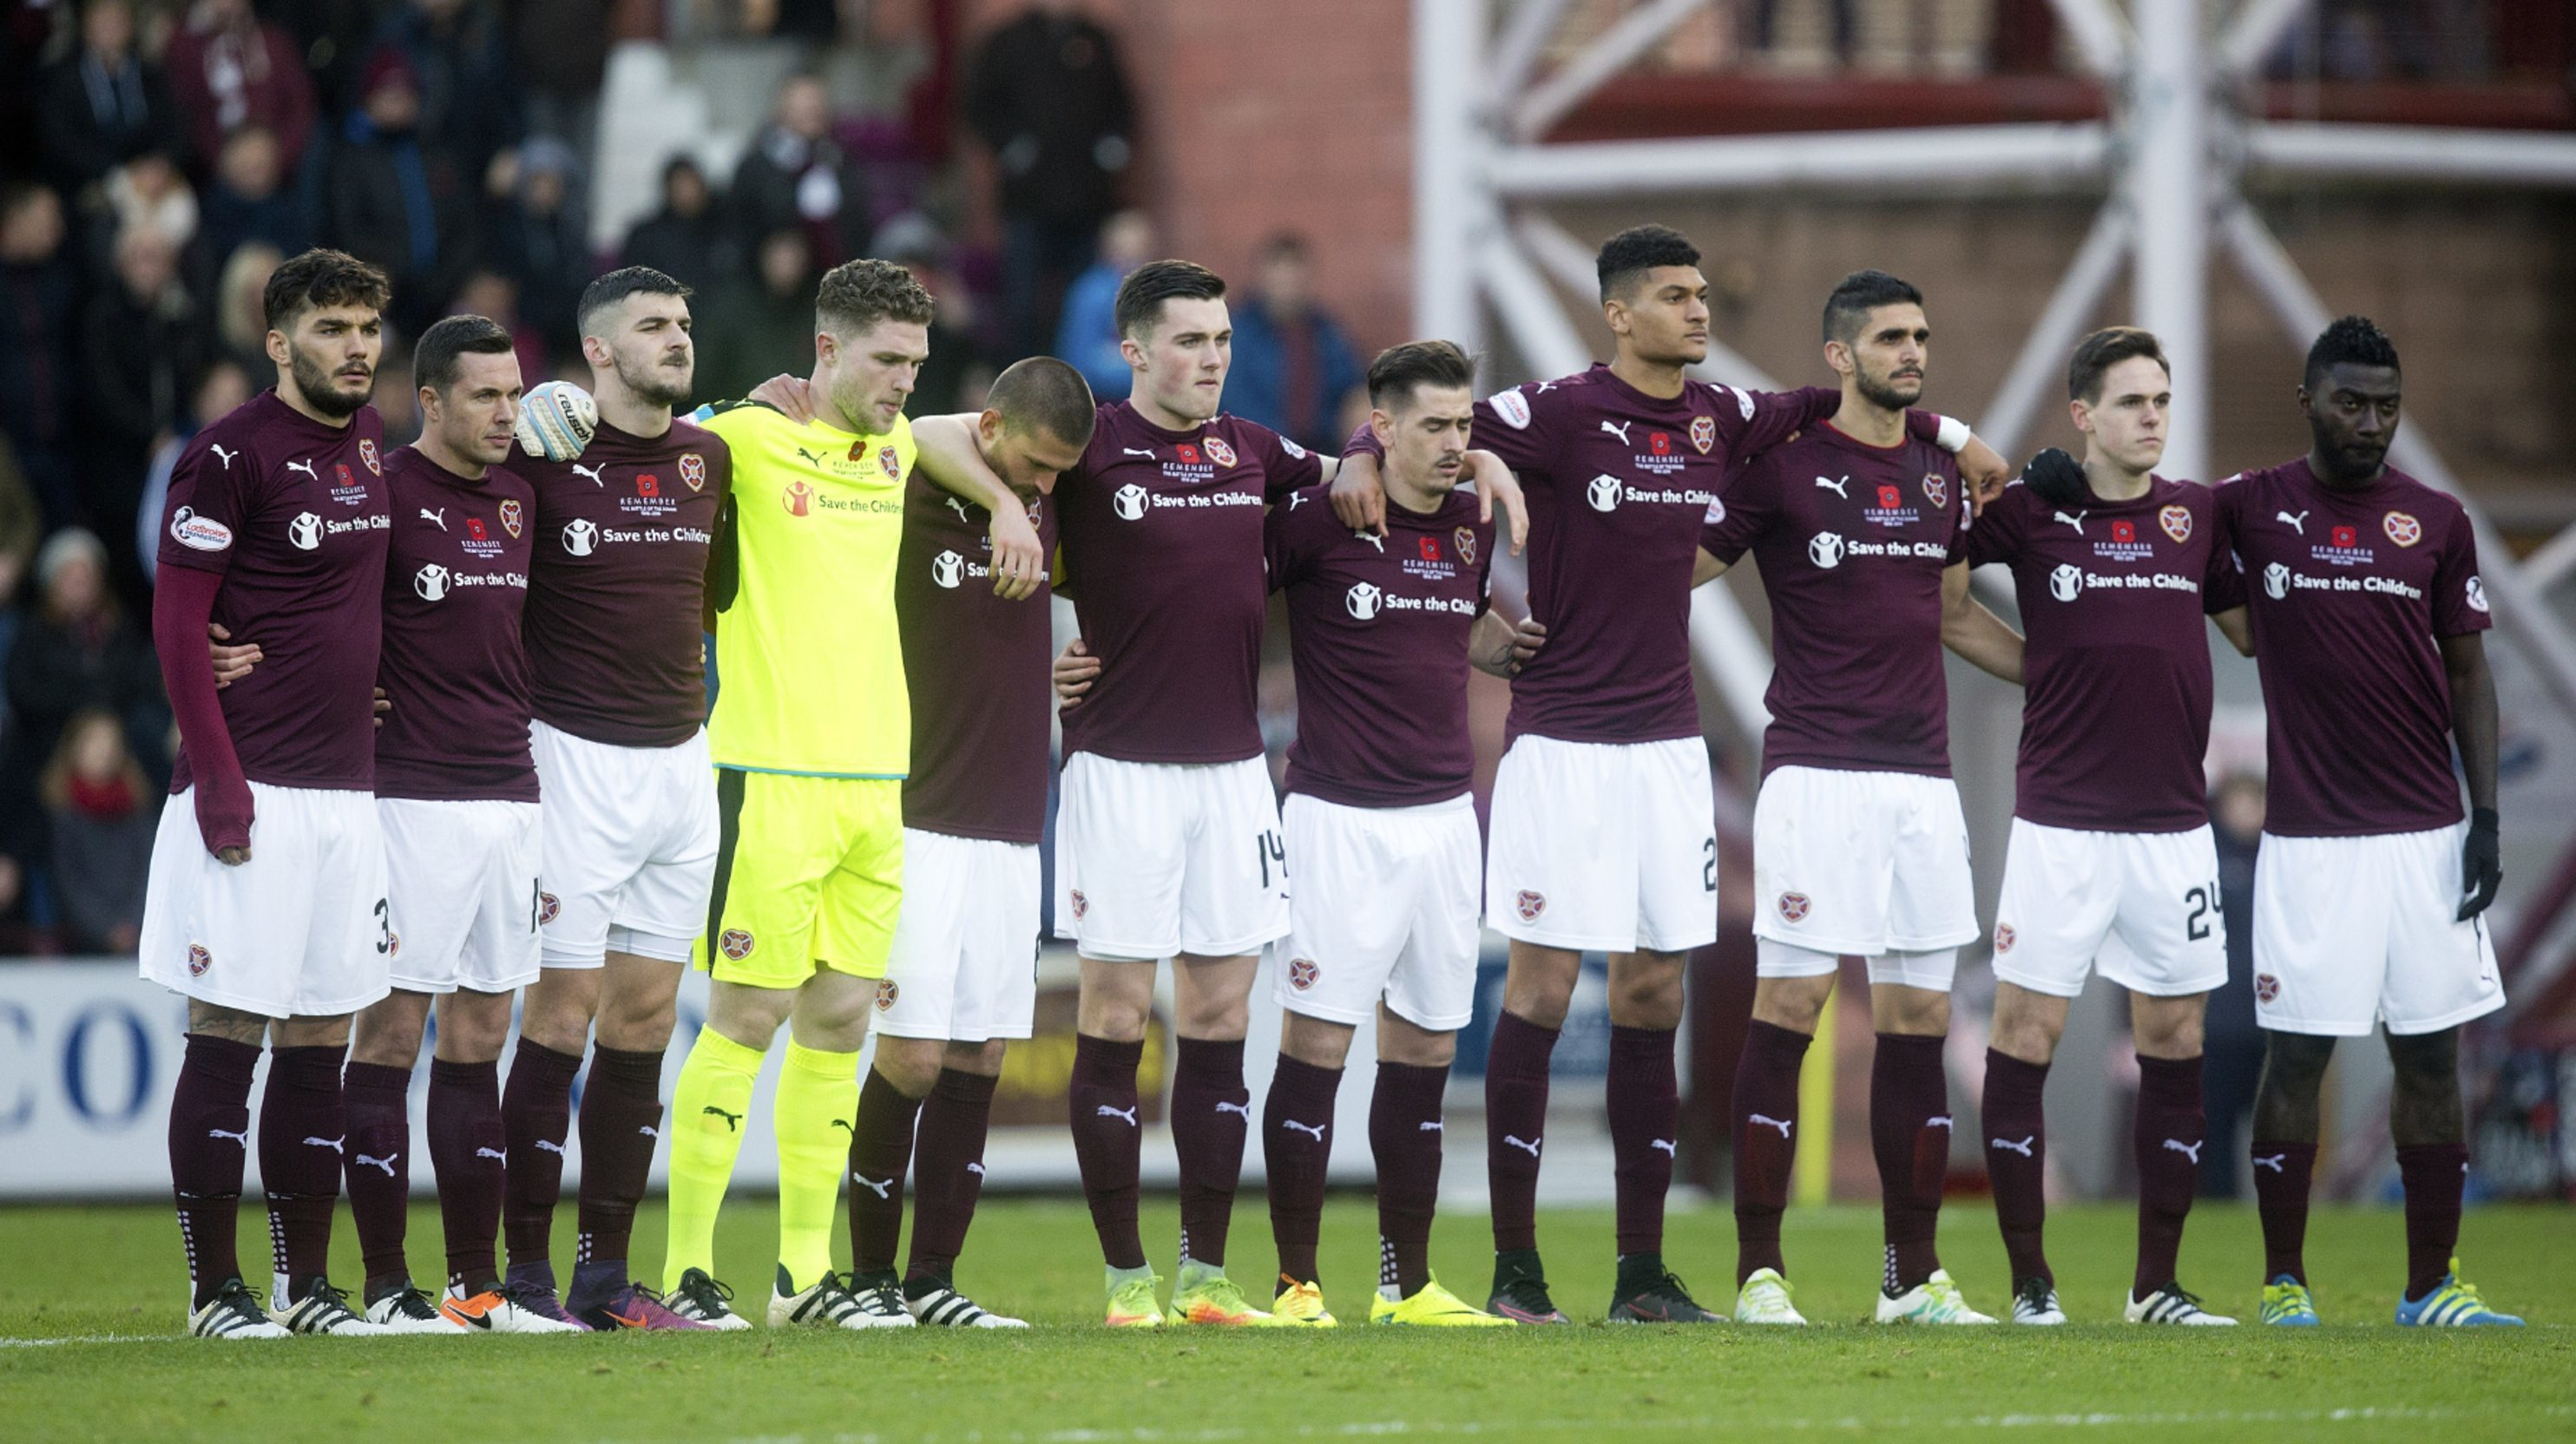 The Hearts players make their silent tribute.